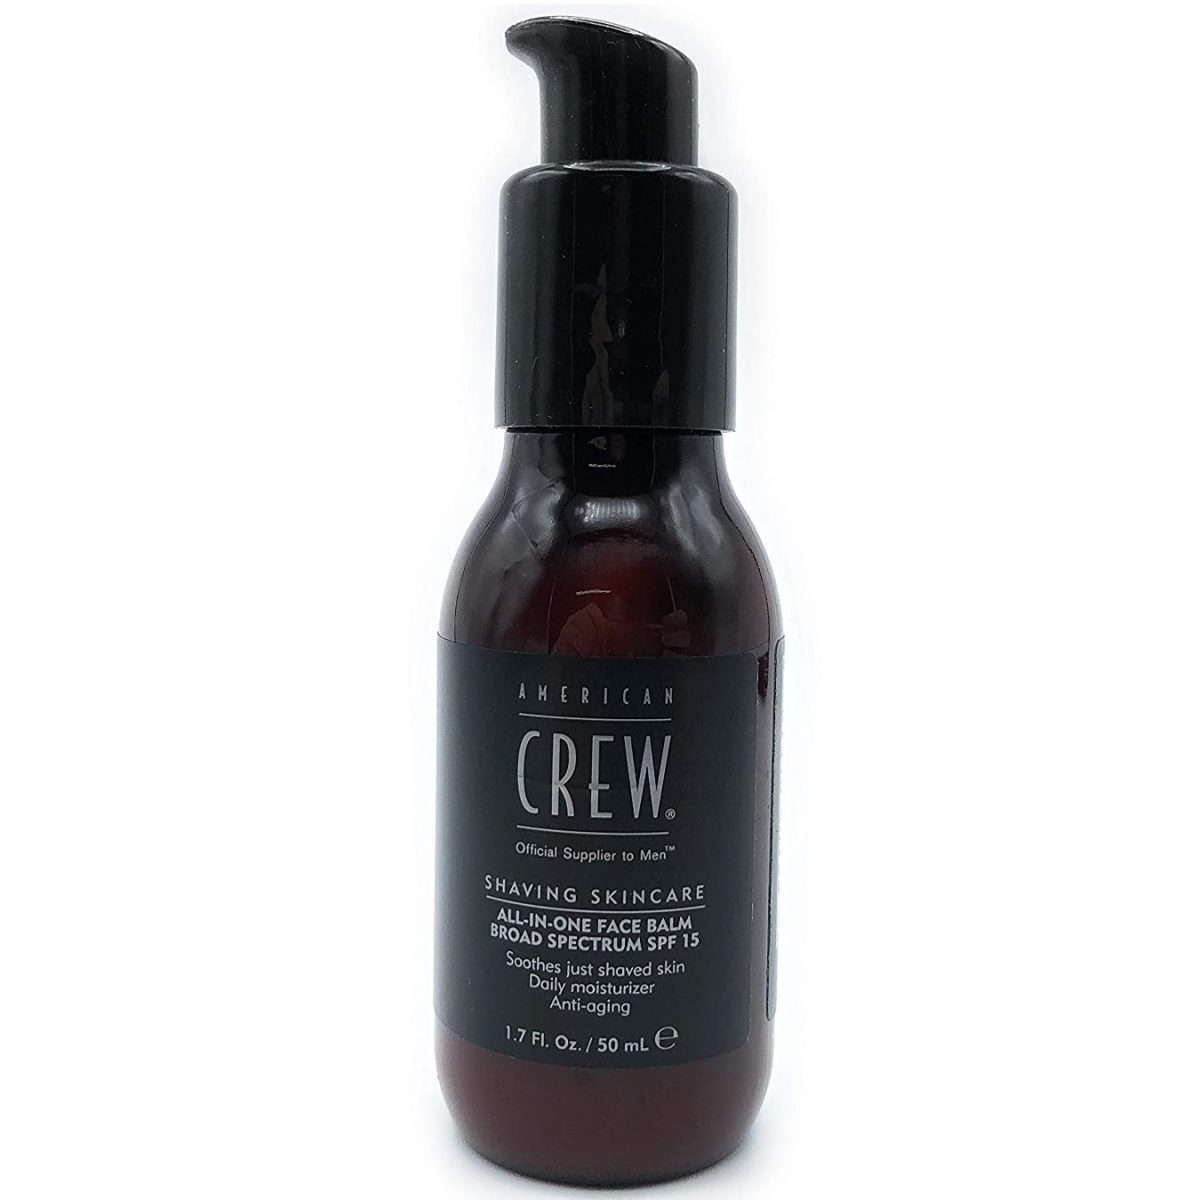 13_Emphase_american-crew-all-in-one-face-balm-broad-spectrum-spf-15-50ml